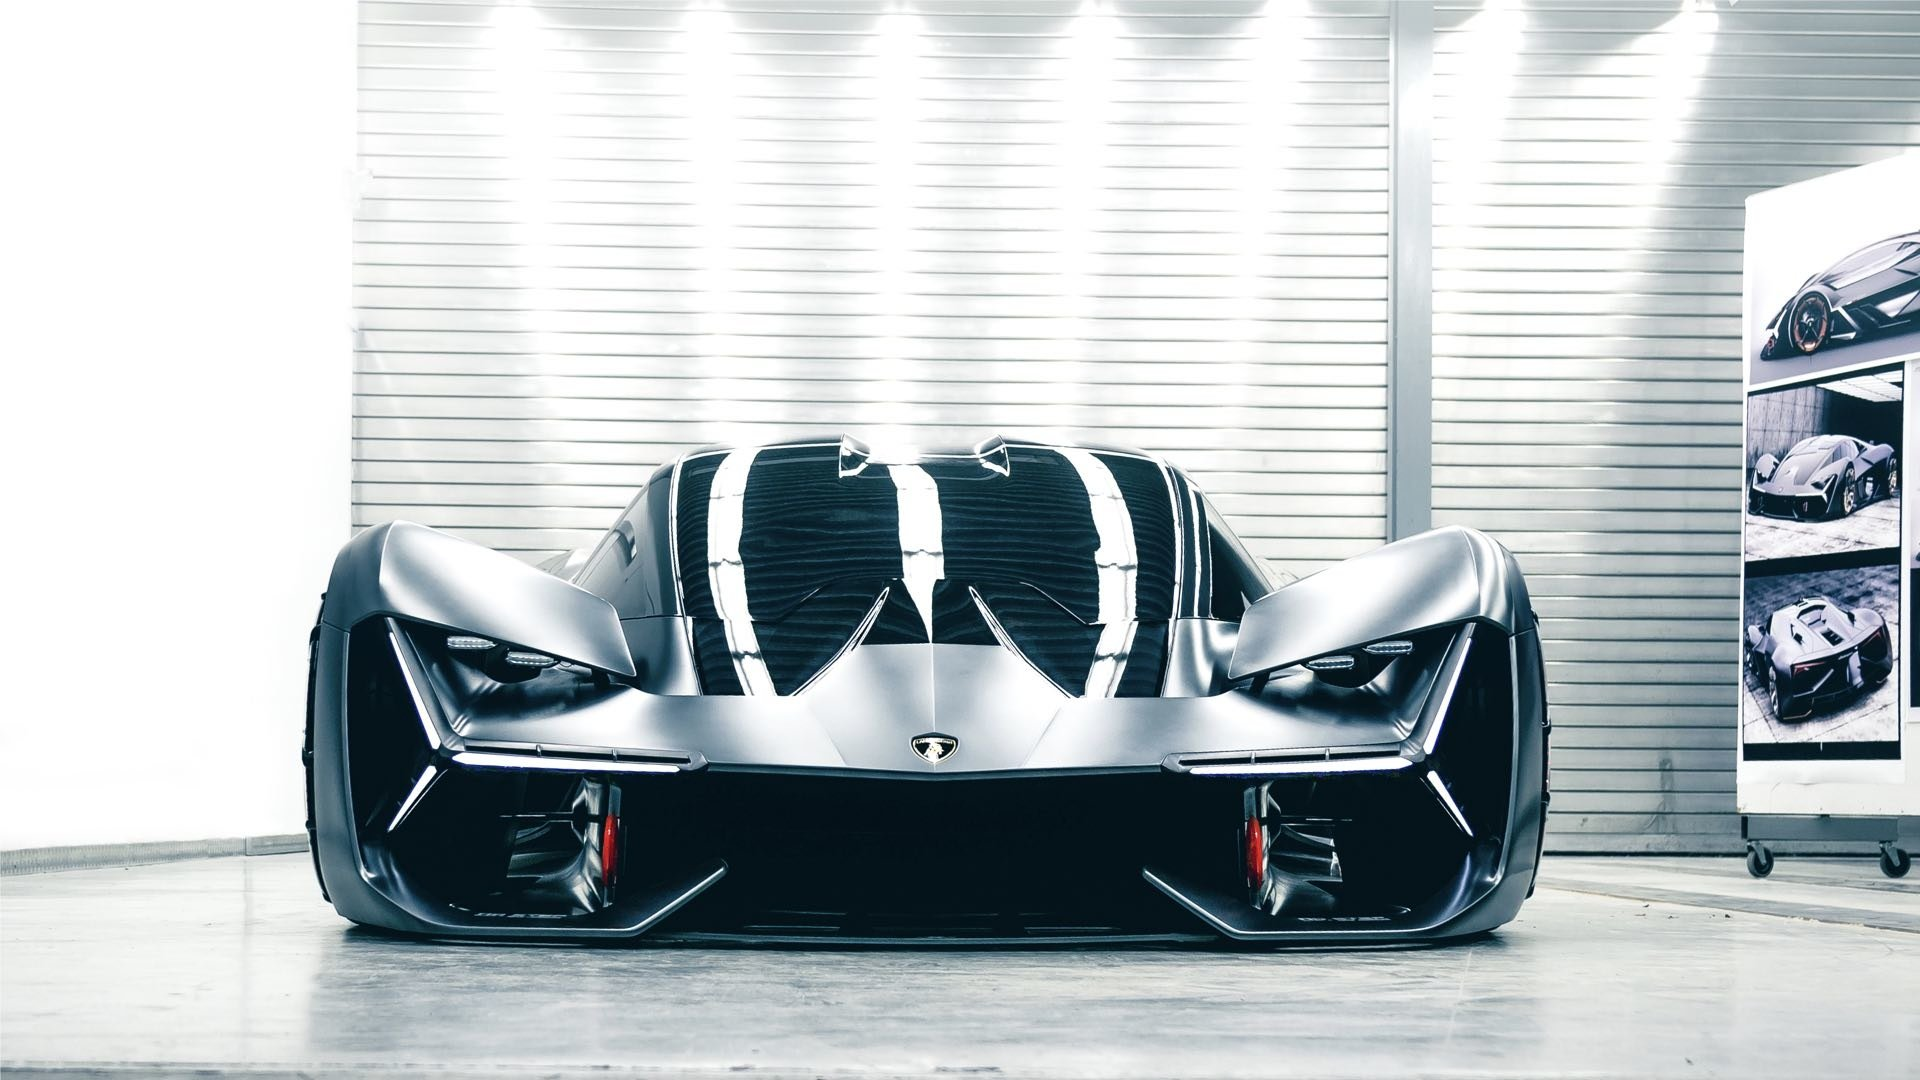 5 Lamborghini Terzo Millennio Hd Wallpapers Background Images